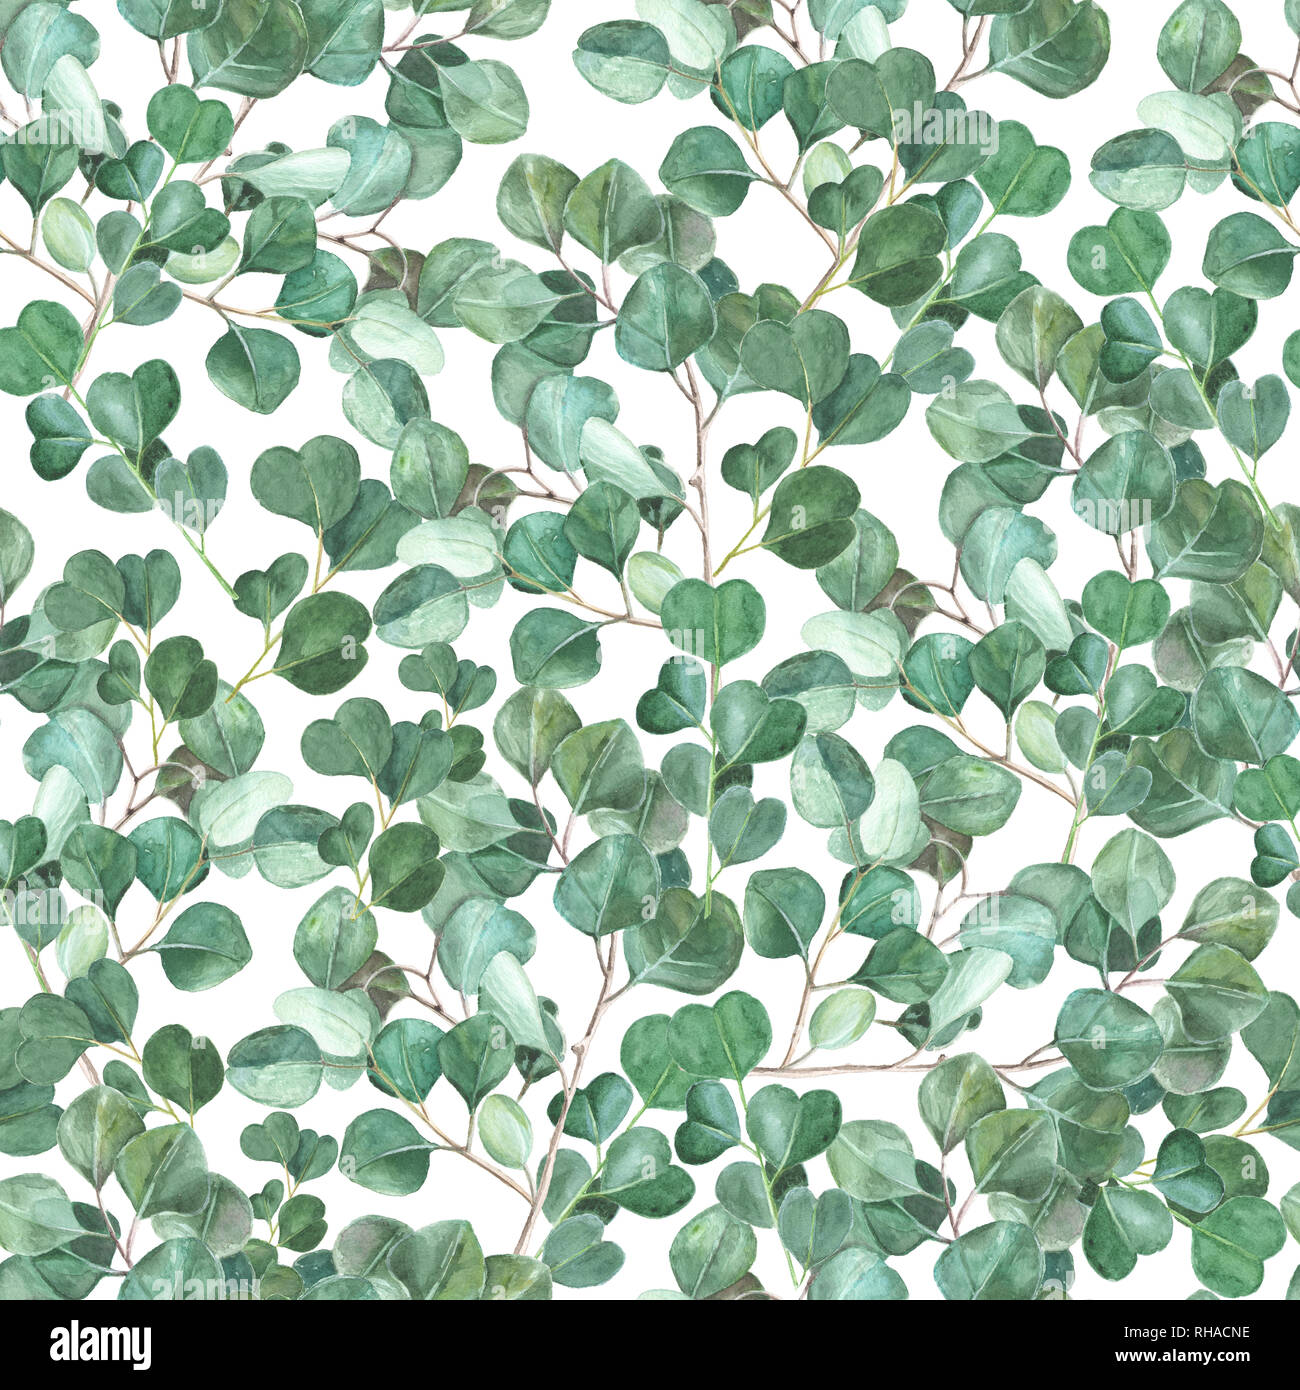 watercolor eucalyptus hand painted seamless pattern green foliage watercolor seamless background RHACNE